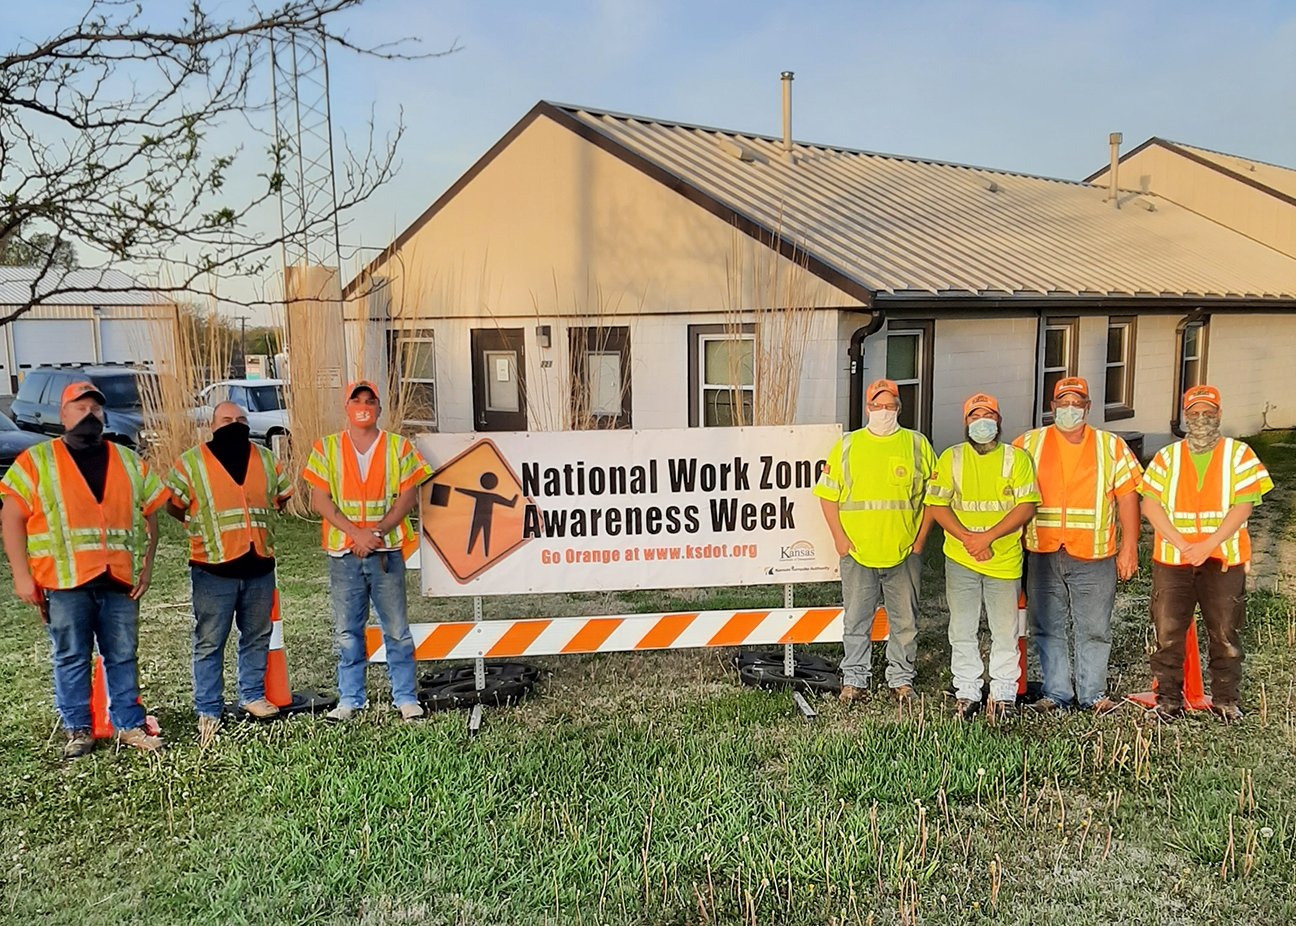 Highway personnel in front of sign